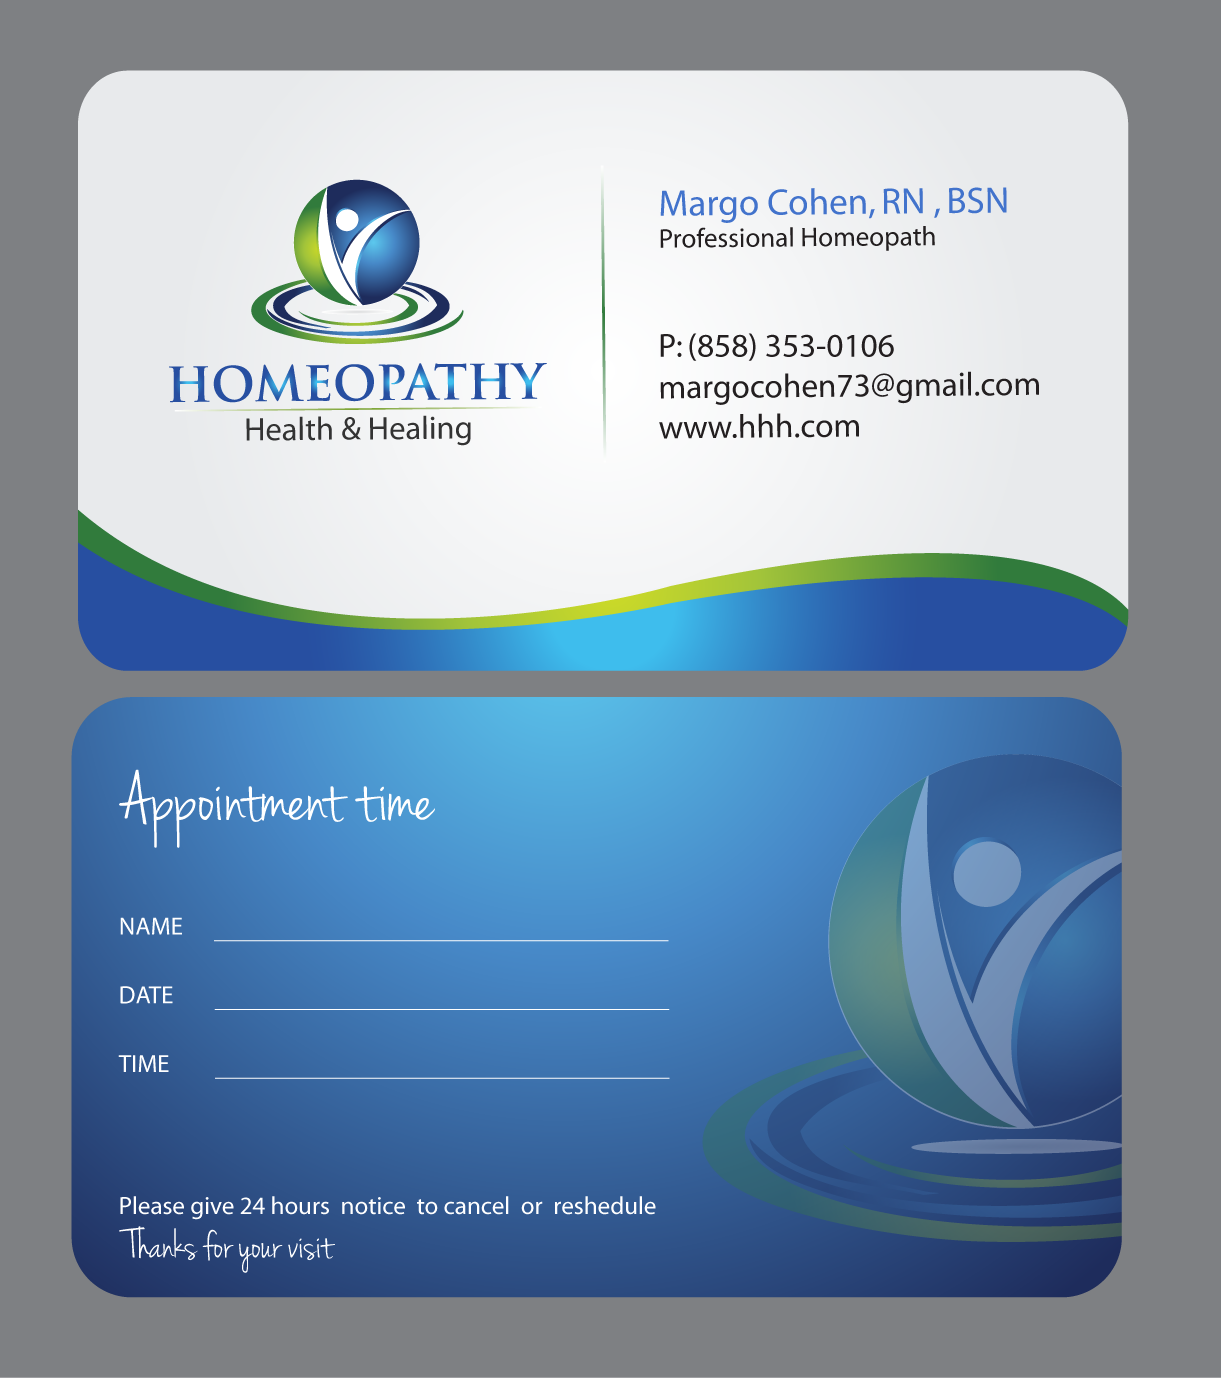 Create the next stationery for Homeopathy Health & Healing